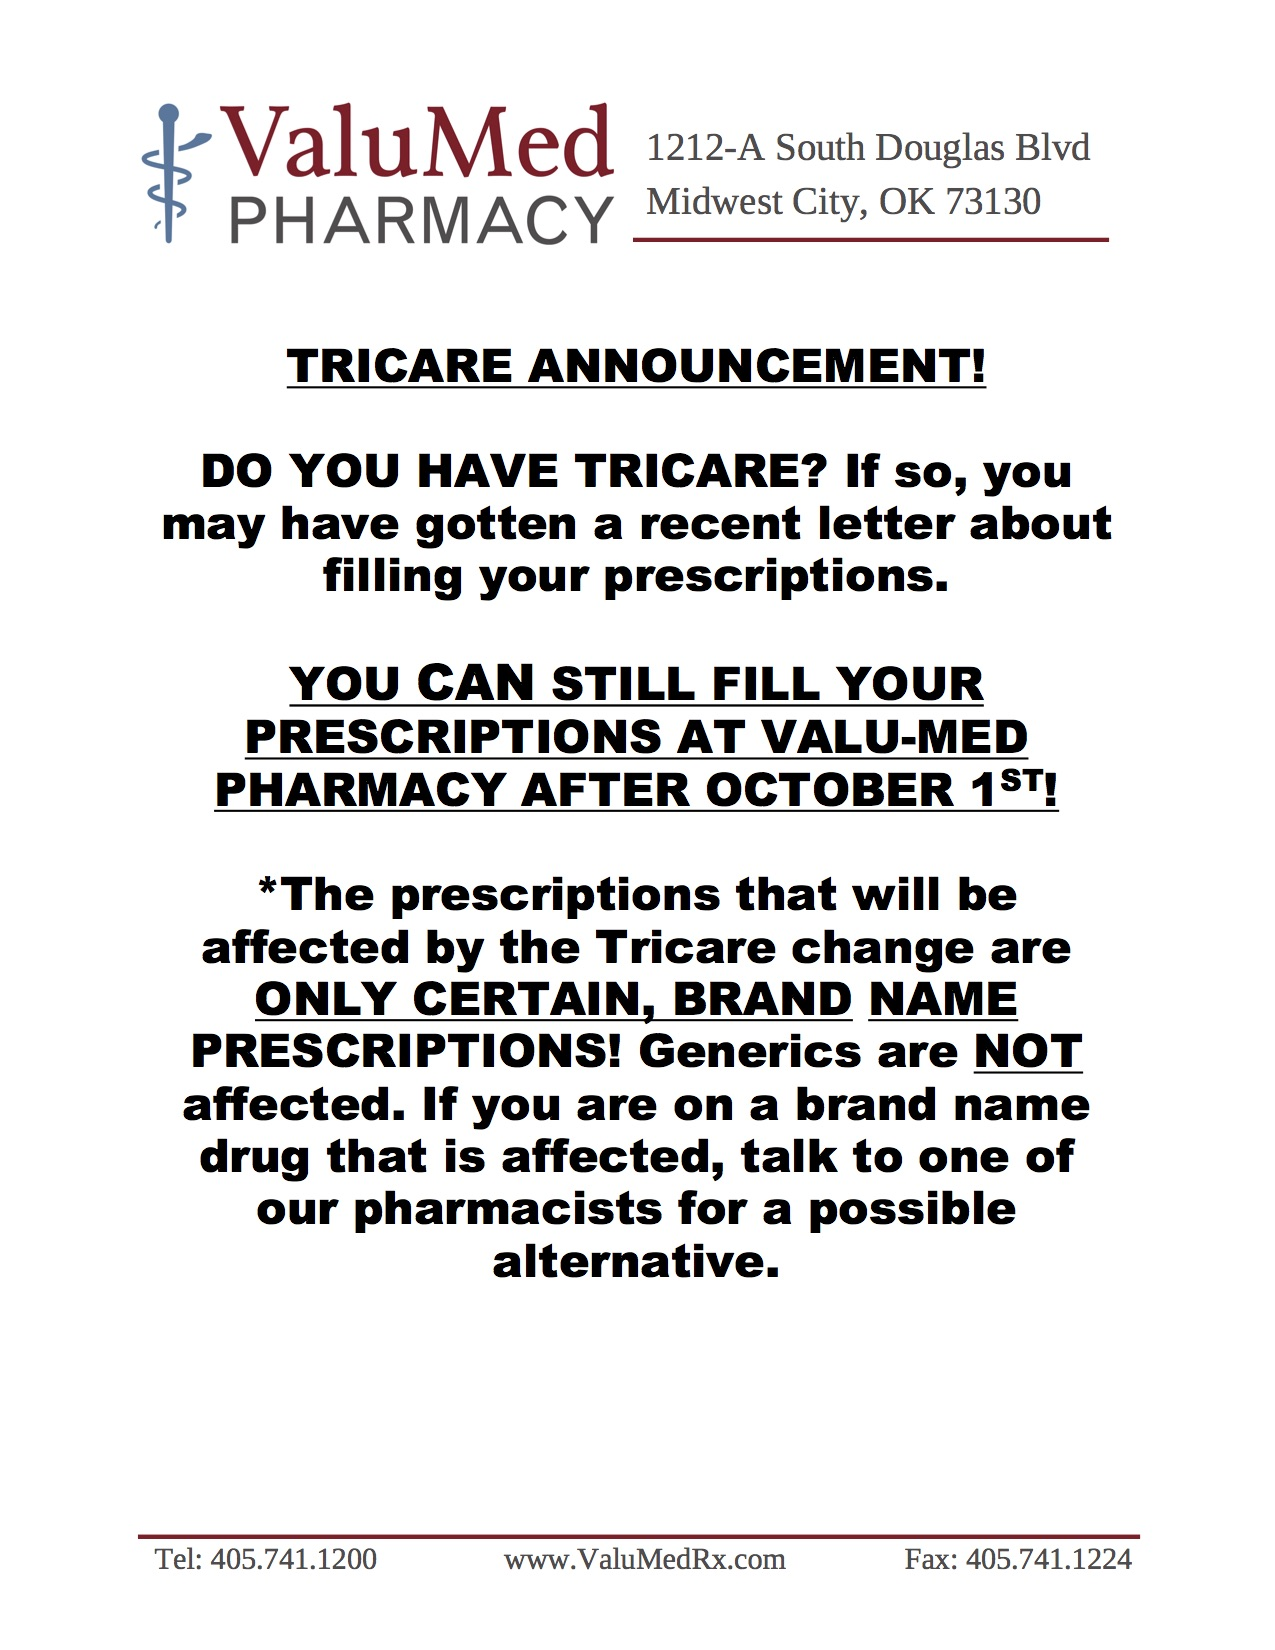 ValuMedPharmacyTricareAccouncement